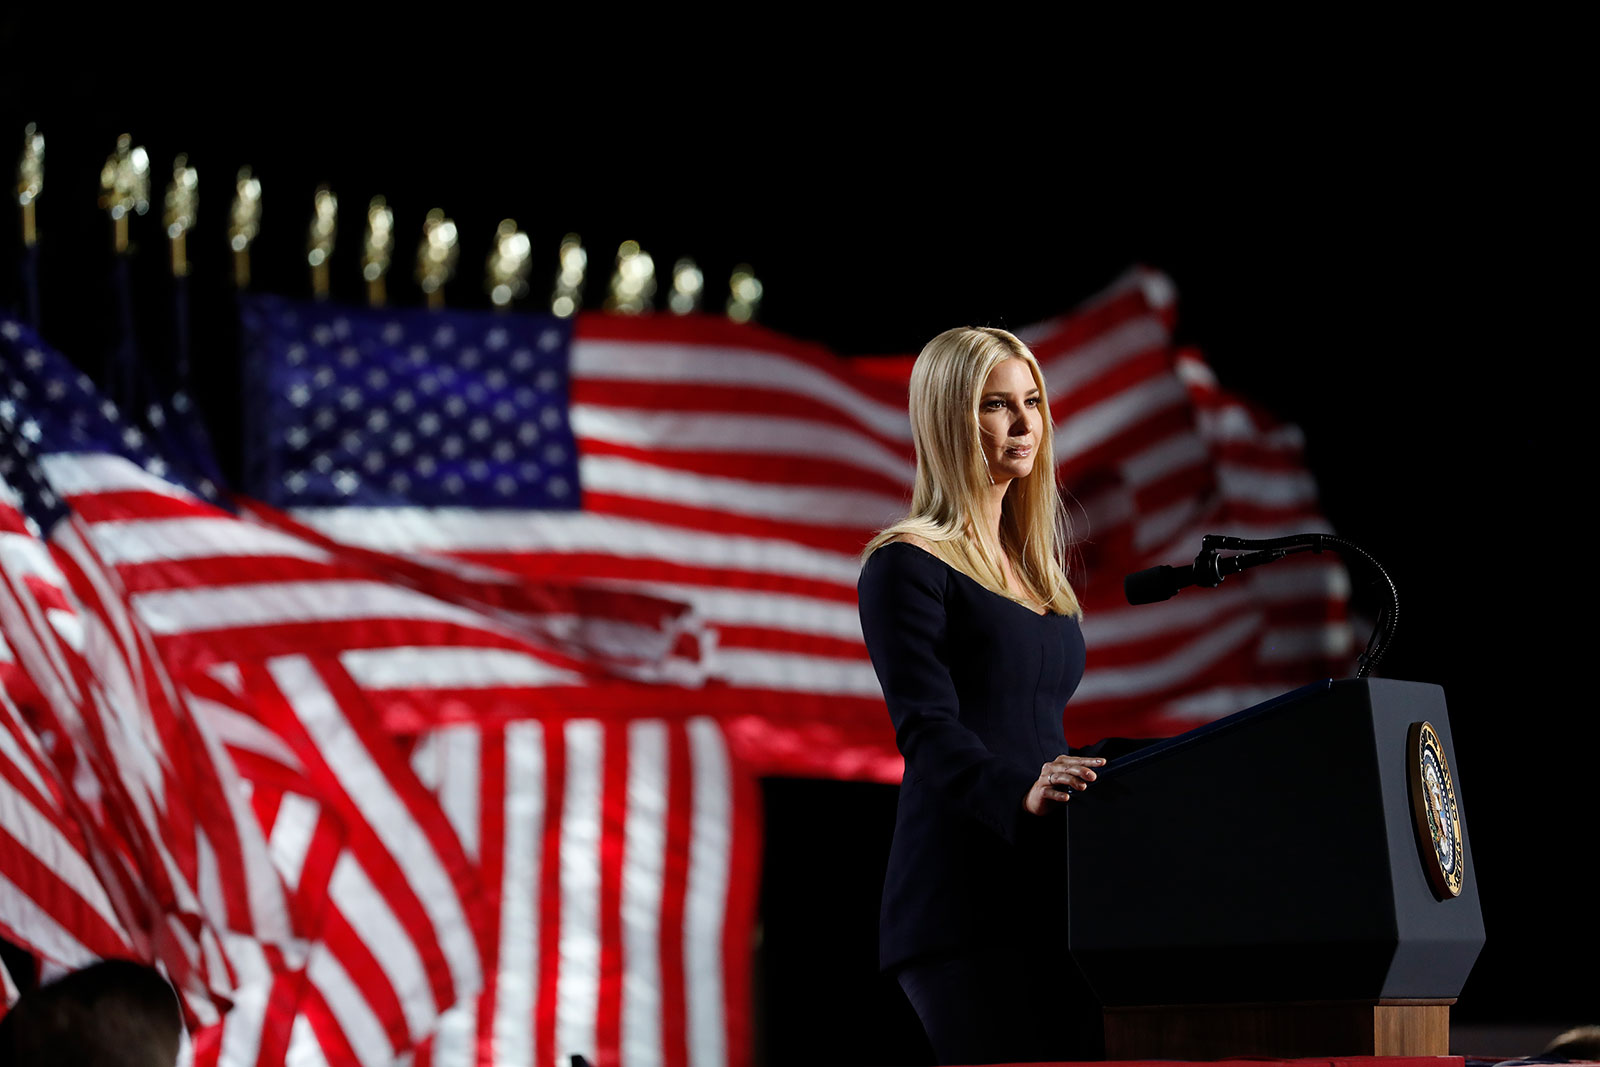 Ivanka Trump speaks from the White House South Lawn during the Republican National Convention on August 27.